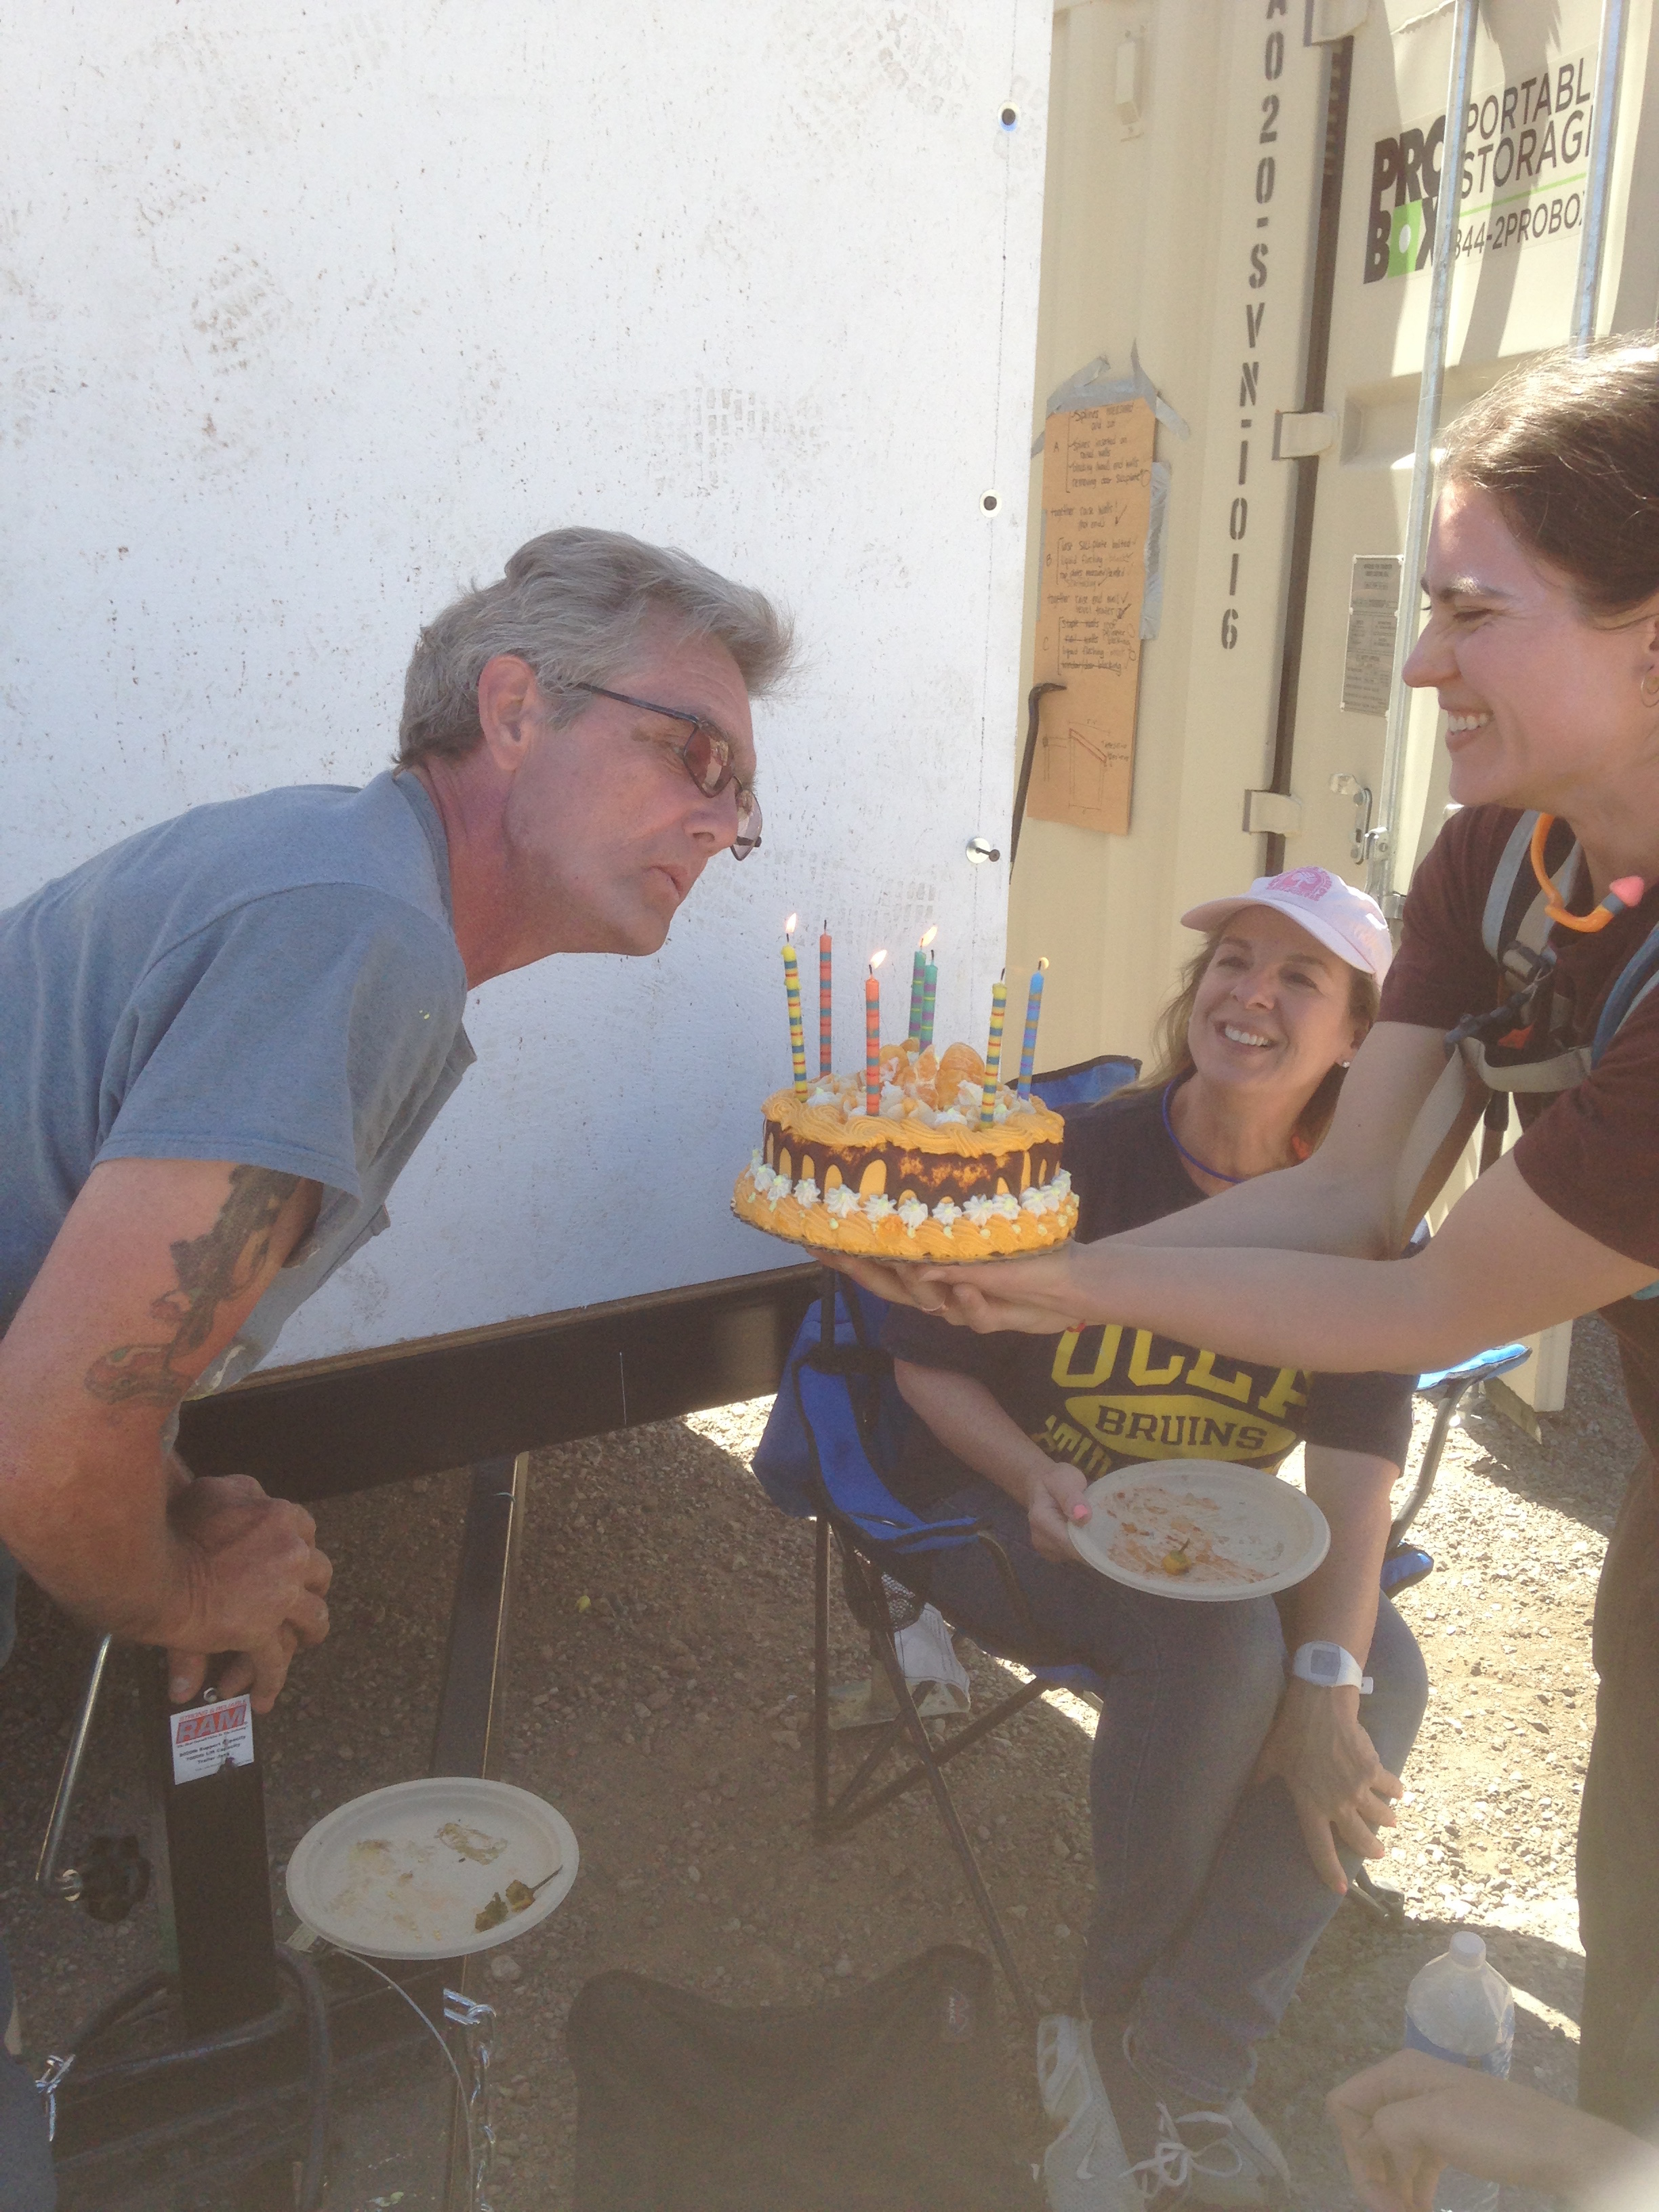 Richard blowing out the candles on his bday cake!